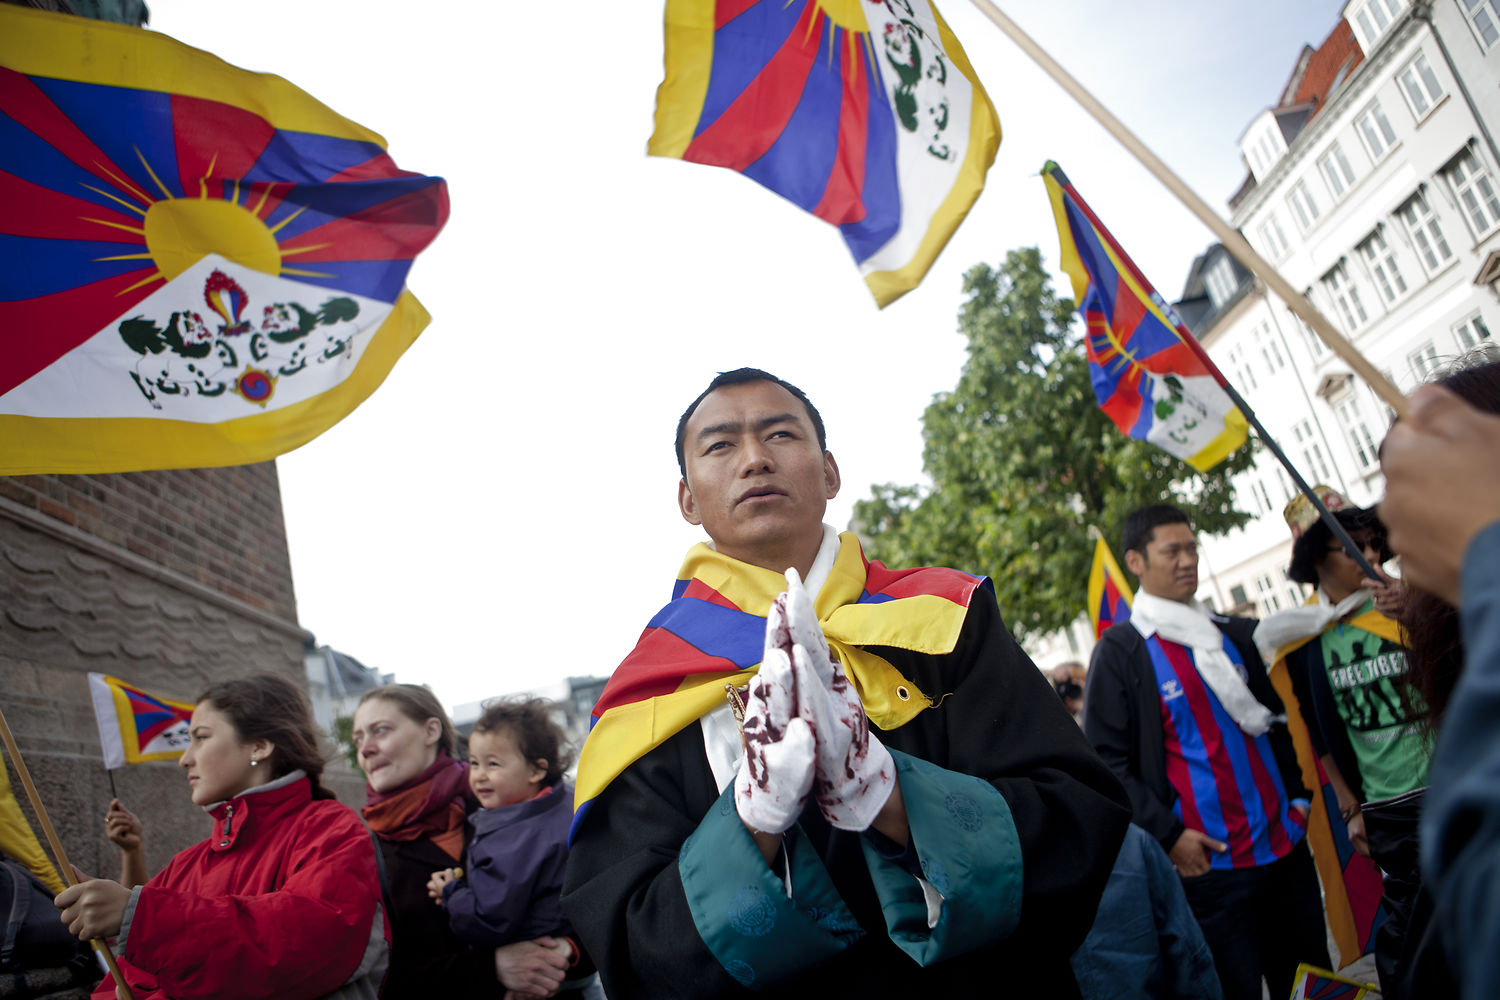 Pro-Tibet demonstrators in Copenhagen on June 15h, 2012. (Photo courtesy: The Local DK/Dennis Lehmann/Ritzau Scanpix)